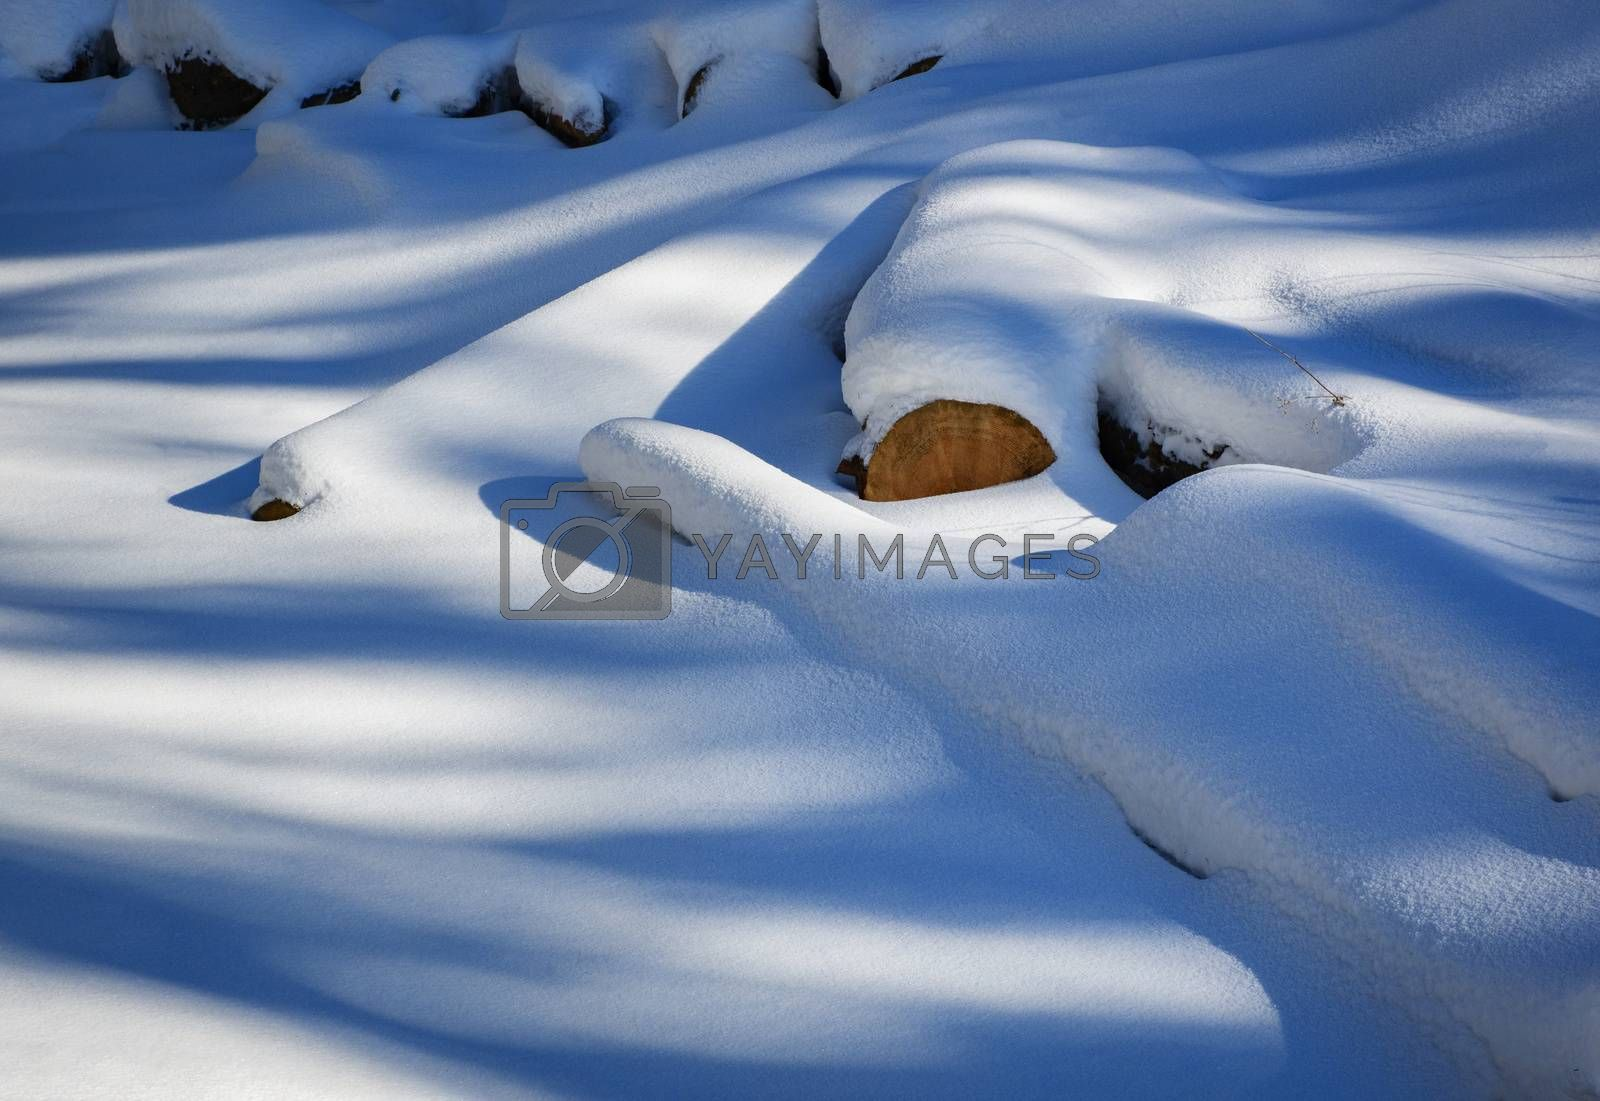 seasonal winter background snowy wood dump